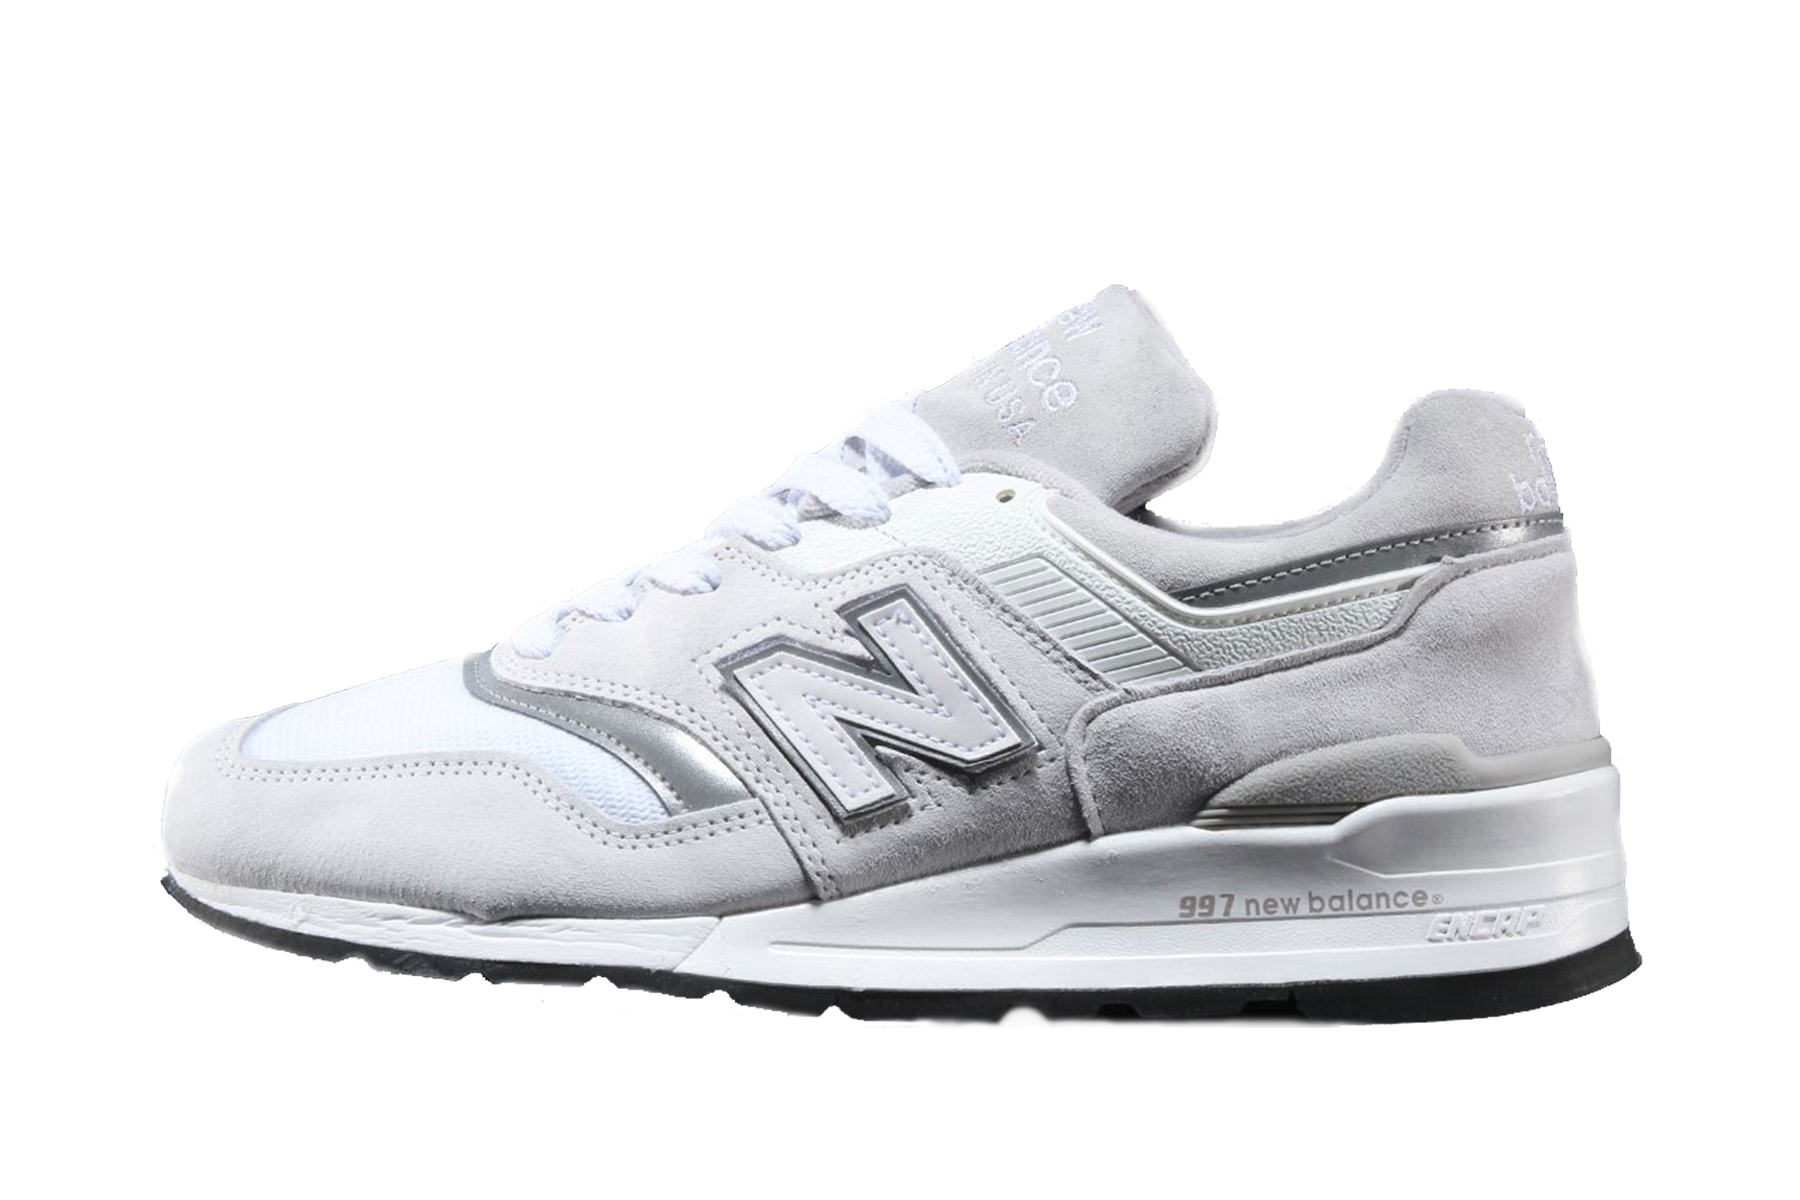 New Balance 997 Swappable